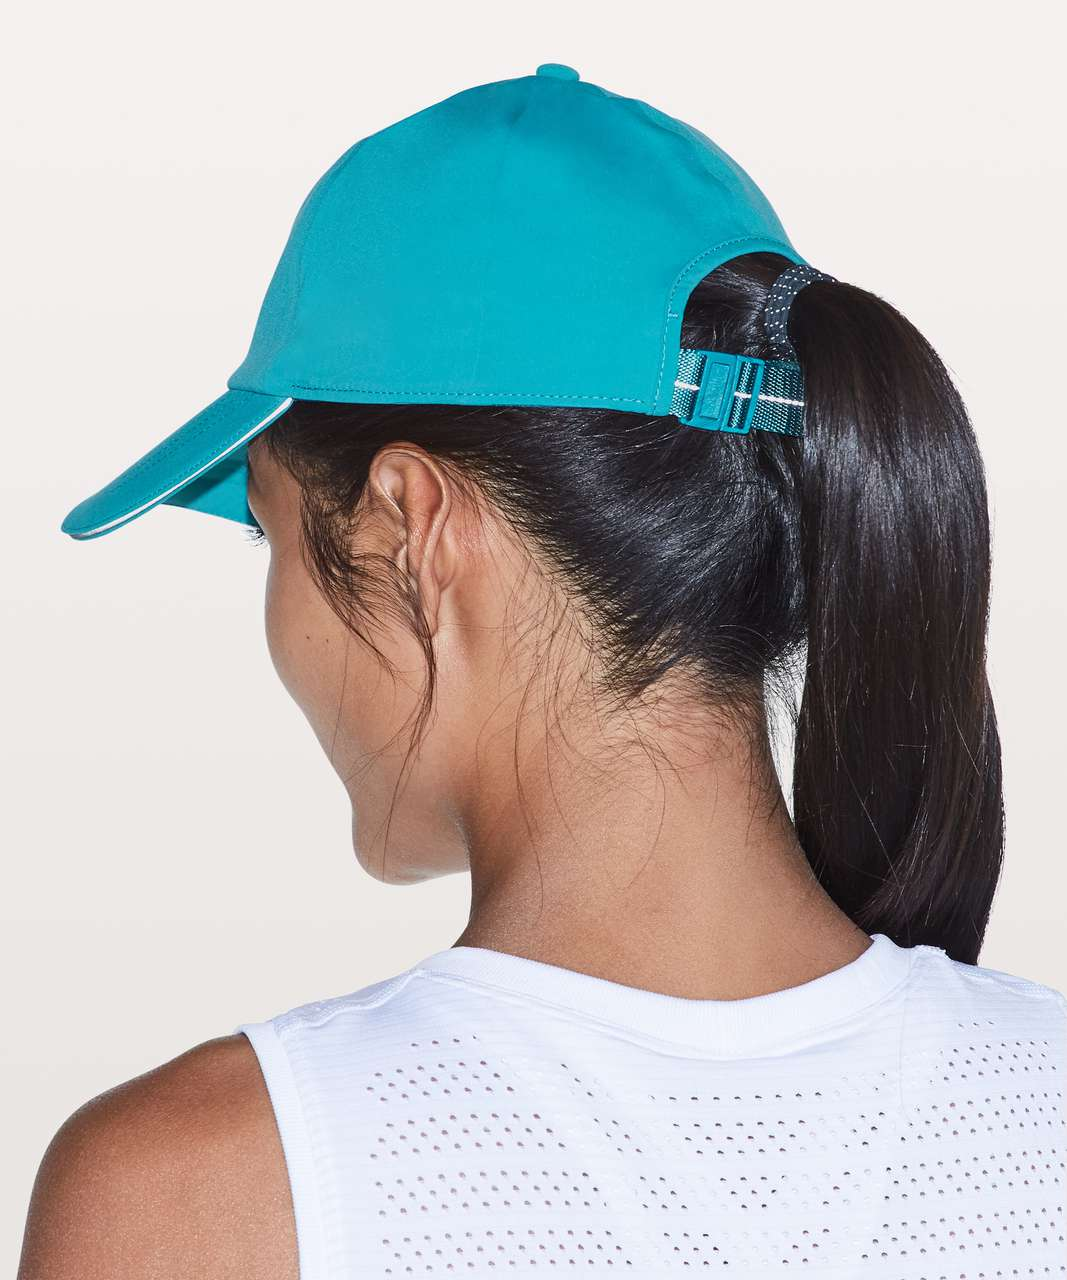 Lululemon Baller Hat Run - Teal Blue